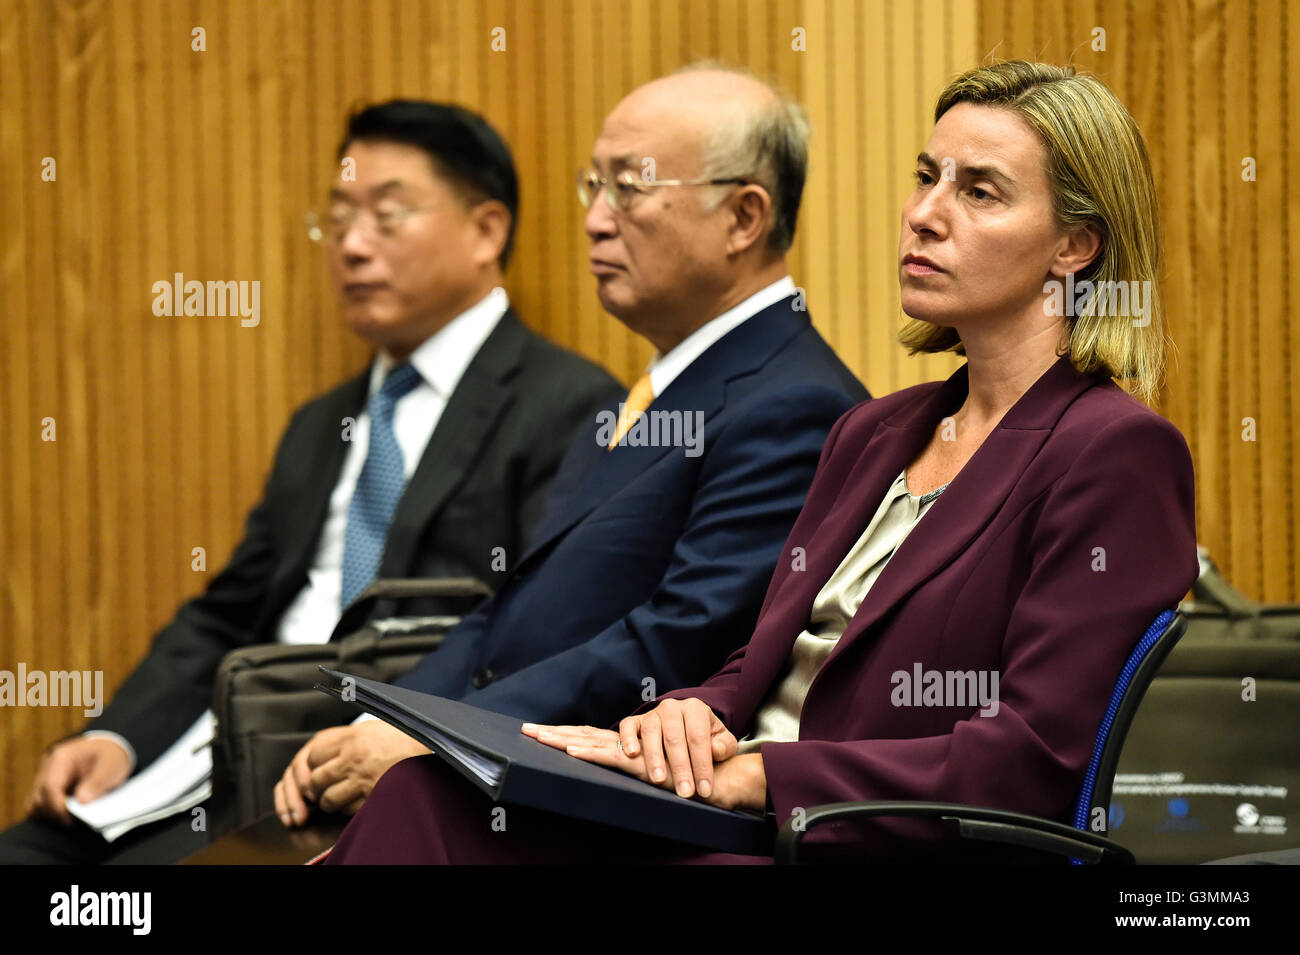 Vienna, Austria. 13th June, 2016. (R to L) European Union (EU) foreign policy chief Federica Mogherini, International - Stock Image